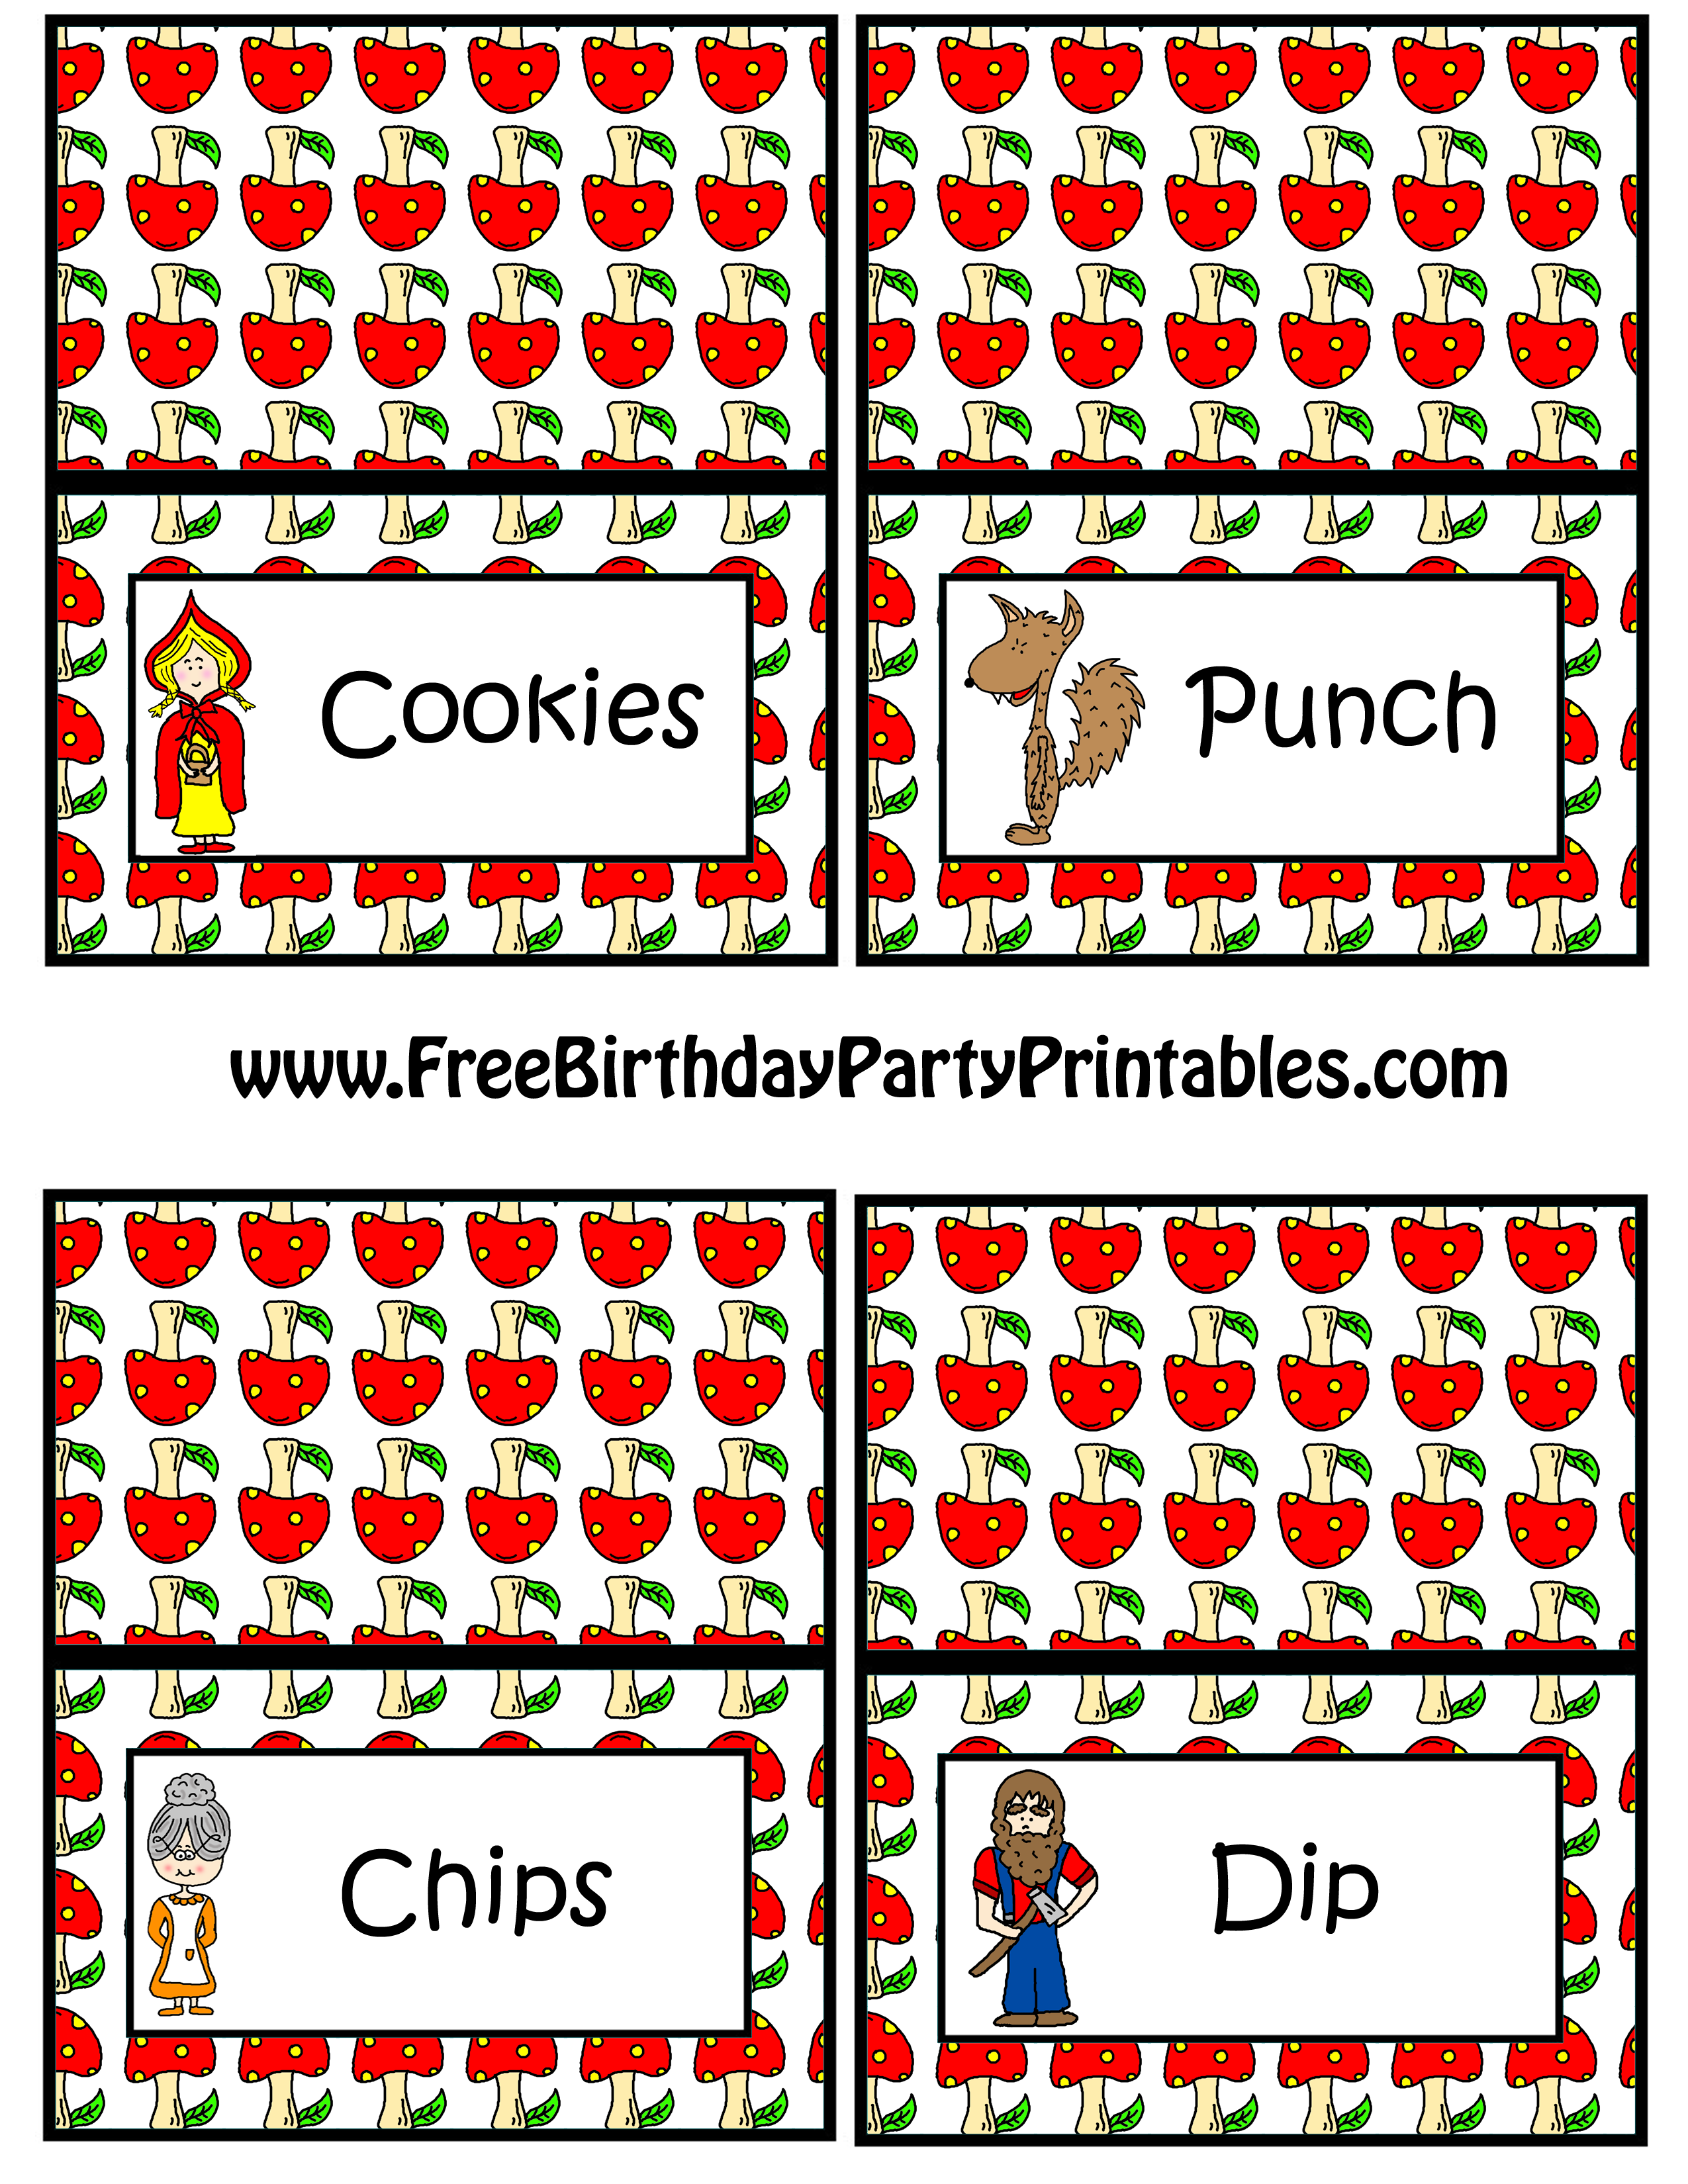 Food cards clipart.